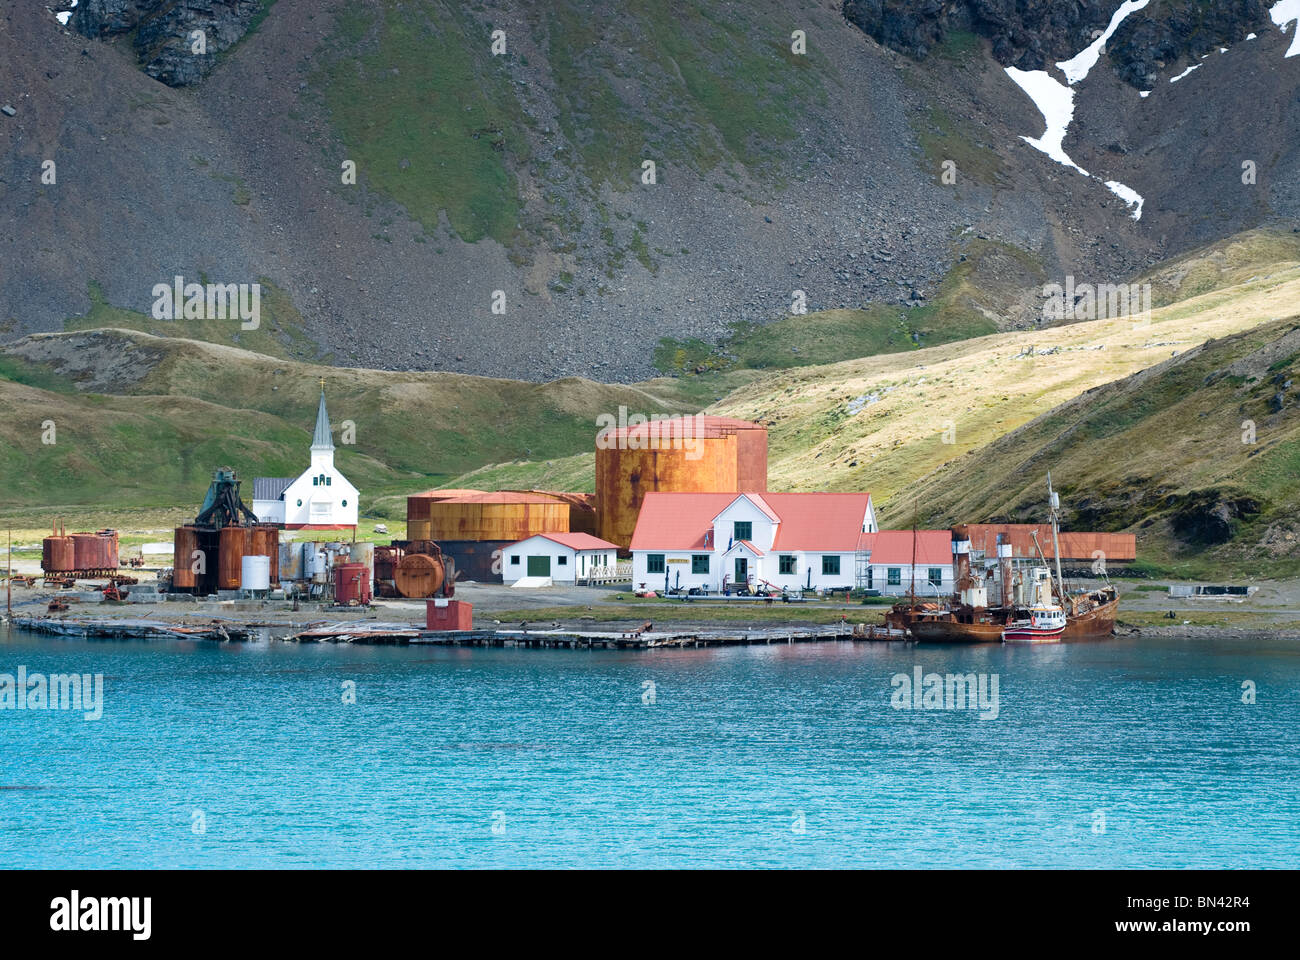 Grytviken, a former whaling station, view from boat, South Georgia - Stock Image